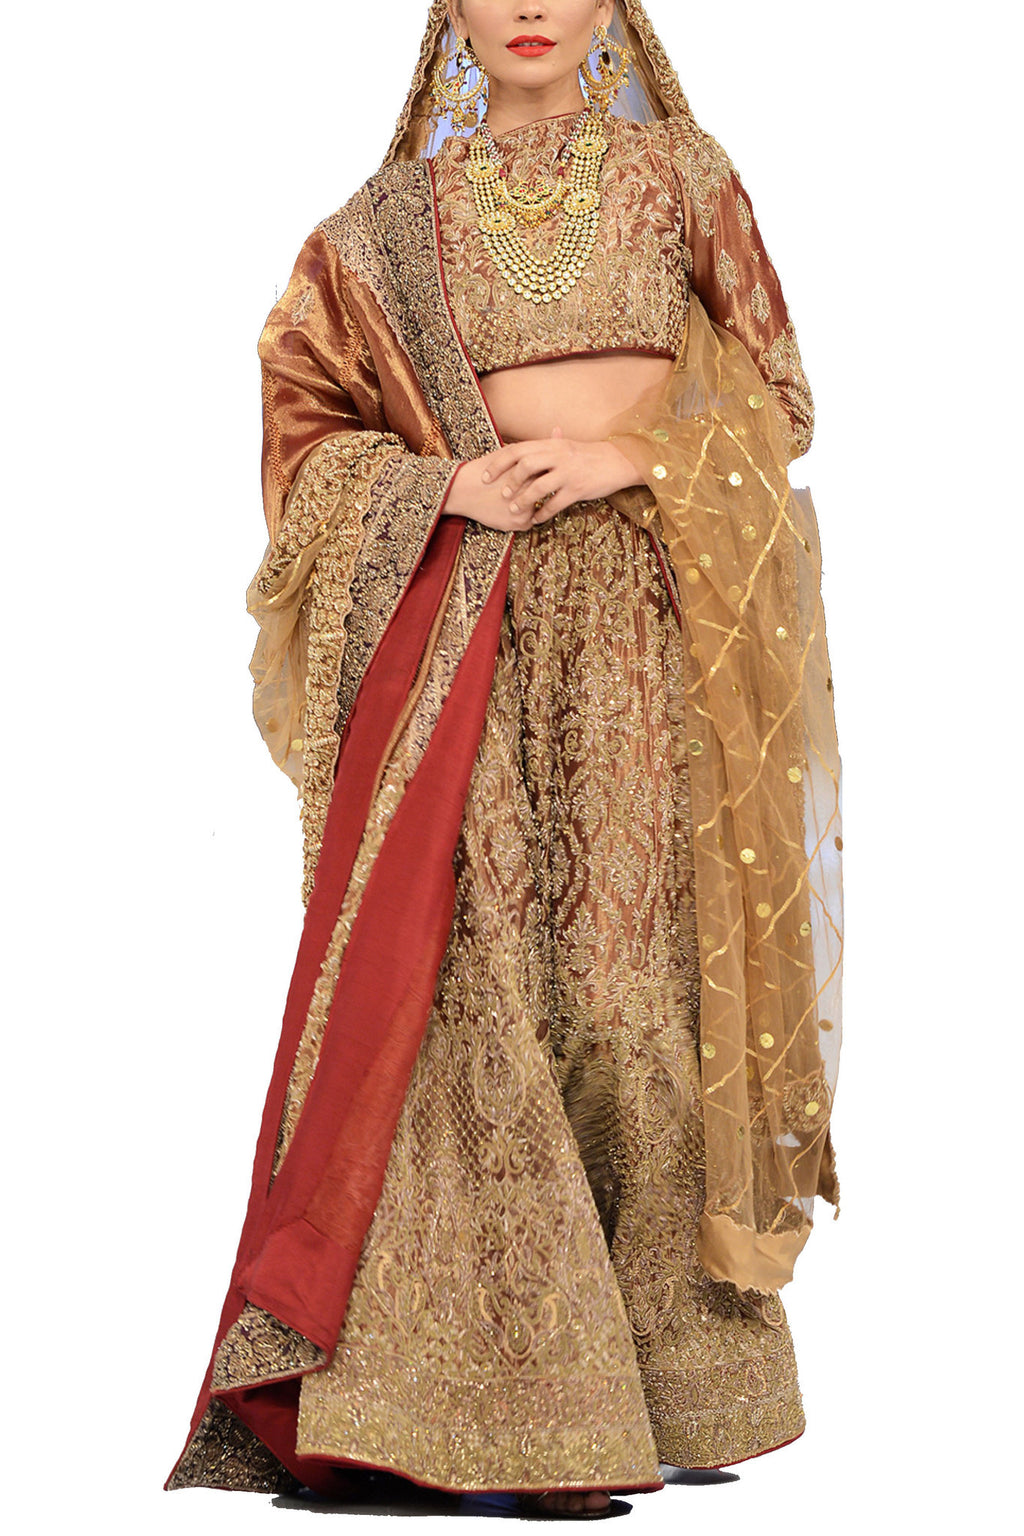 HSY - Rust Tissue Lehnga With Tissue Dupatta & Choli